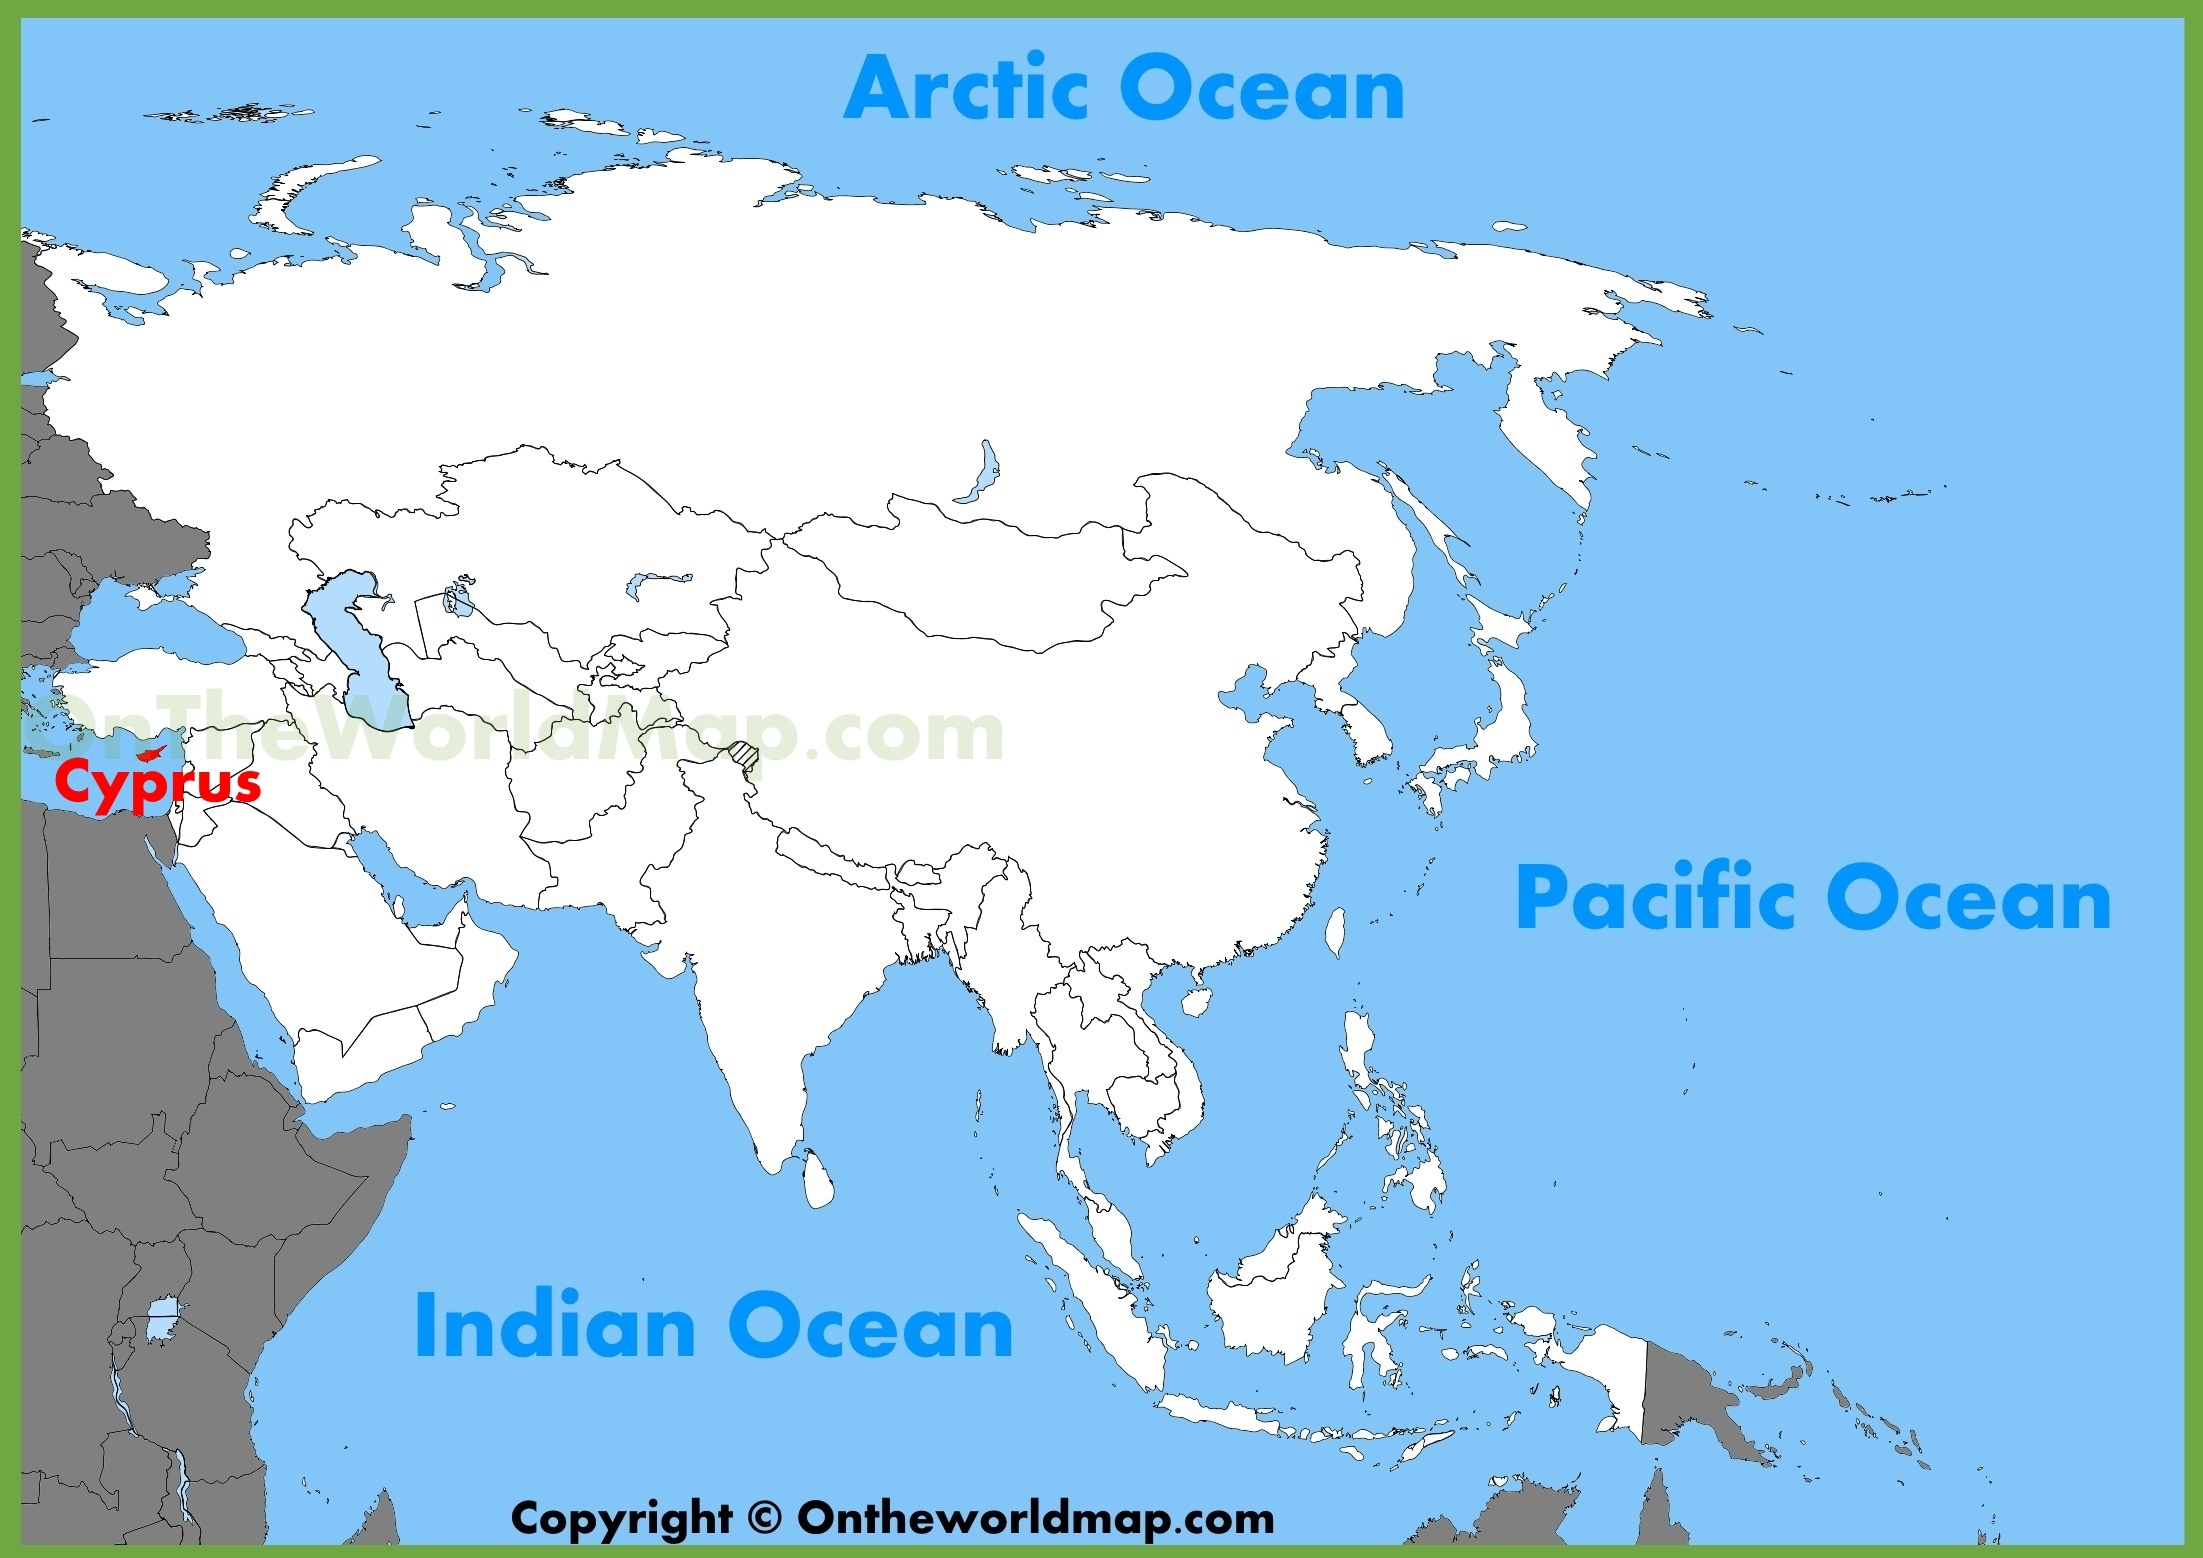 Where Is Cyprus Located On The World Map.Cyprus Location On The Asia Map